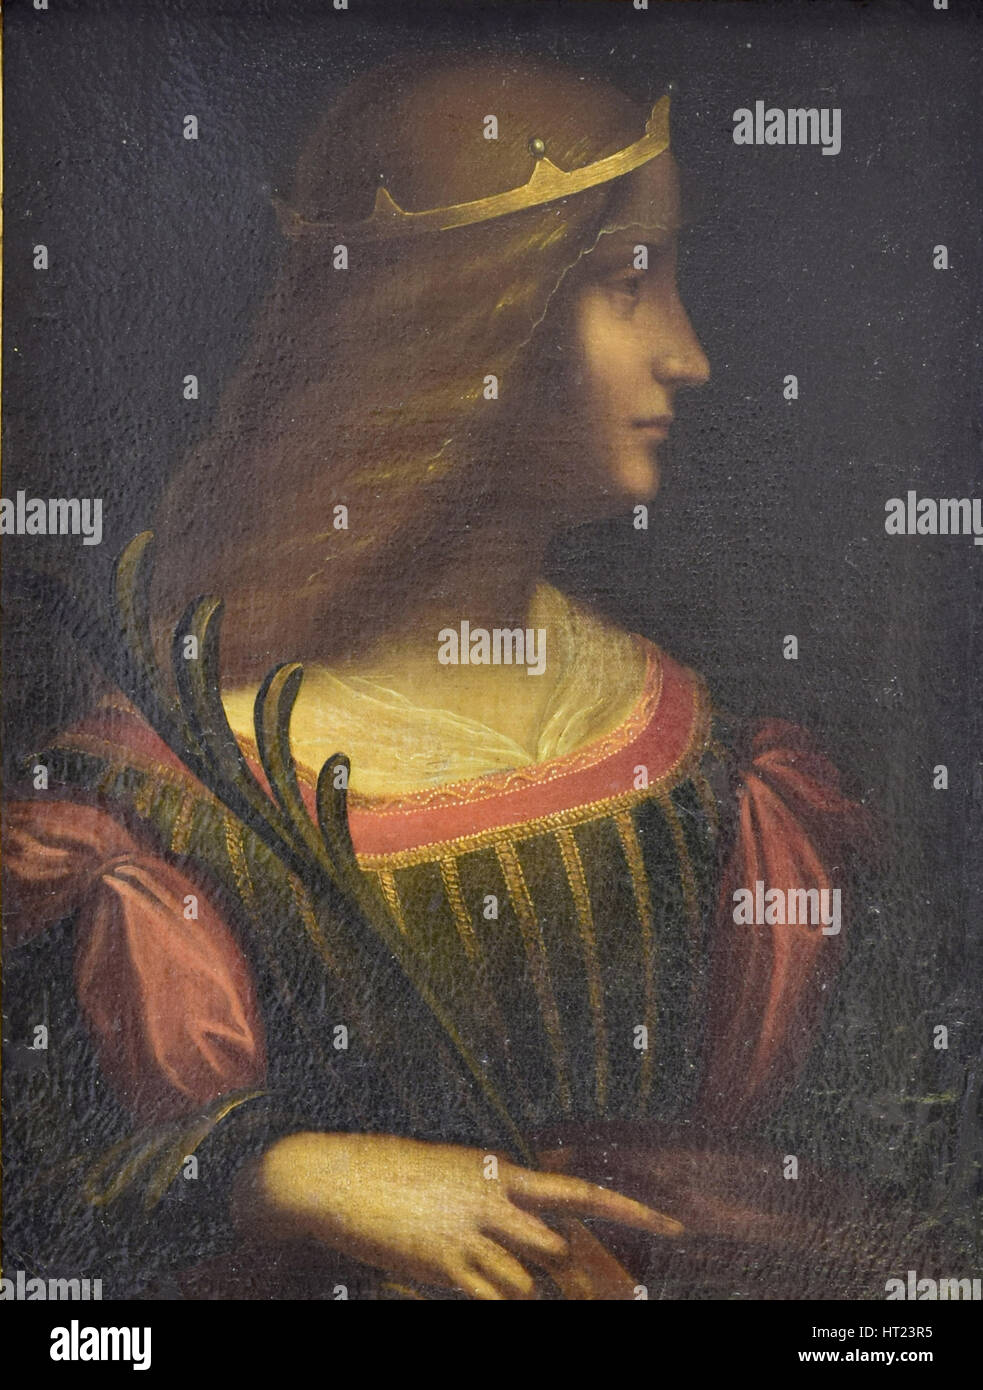 Portrait of Isabella d'Este, c. 1510. Artist: Leonardo da Vinci, (attributed) - Stock Image